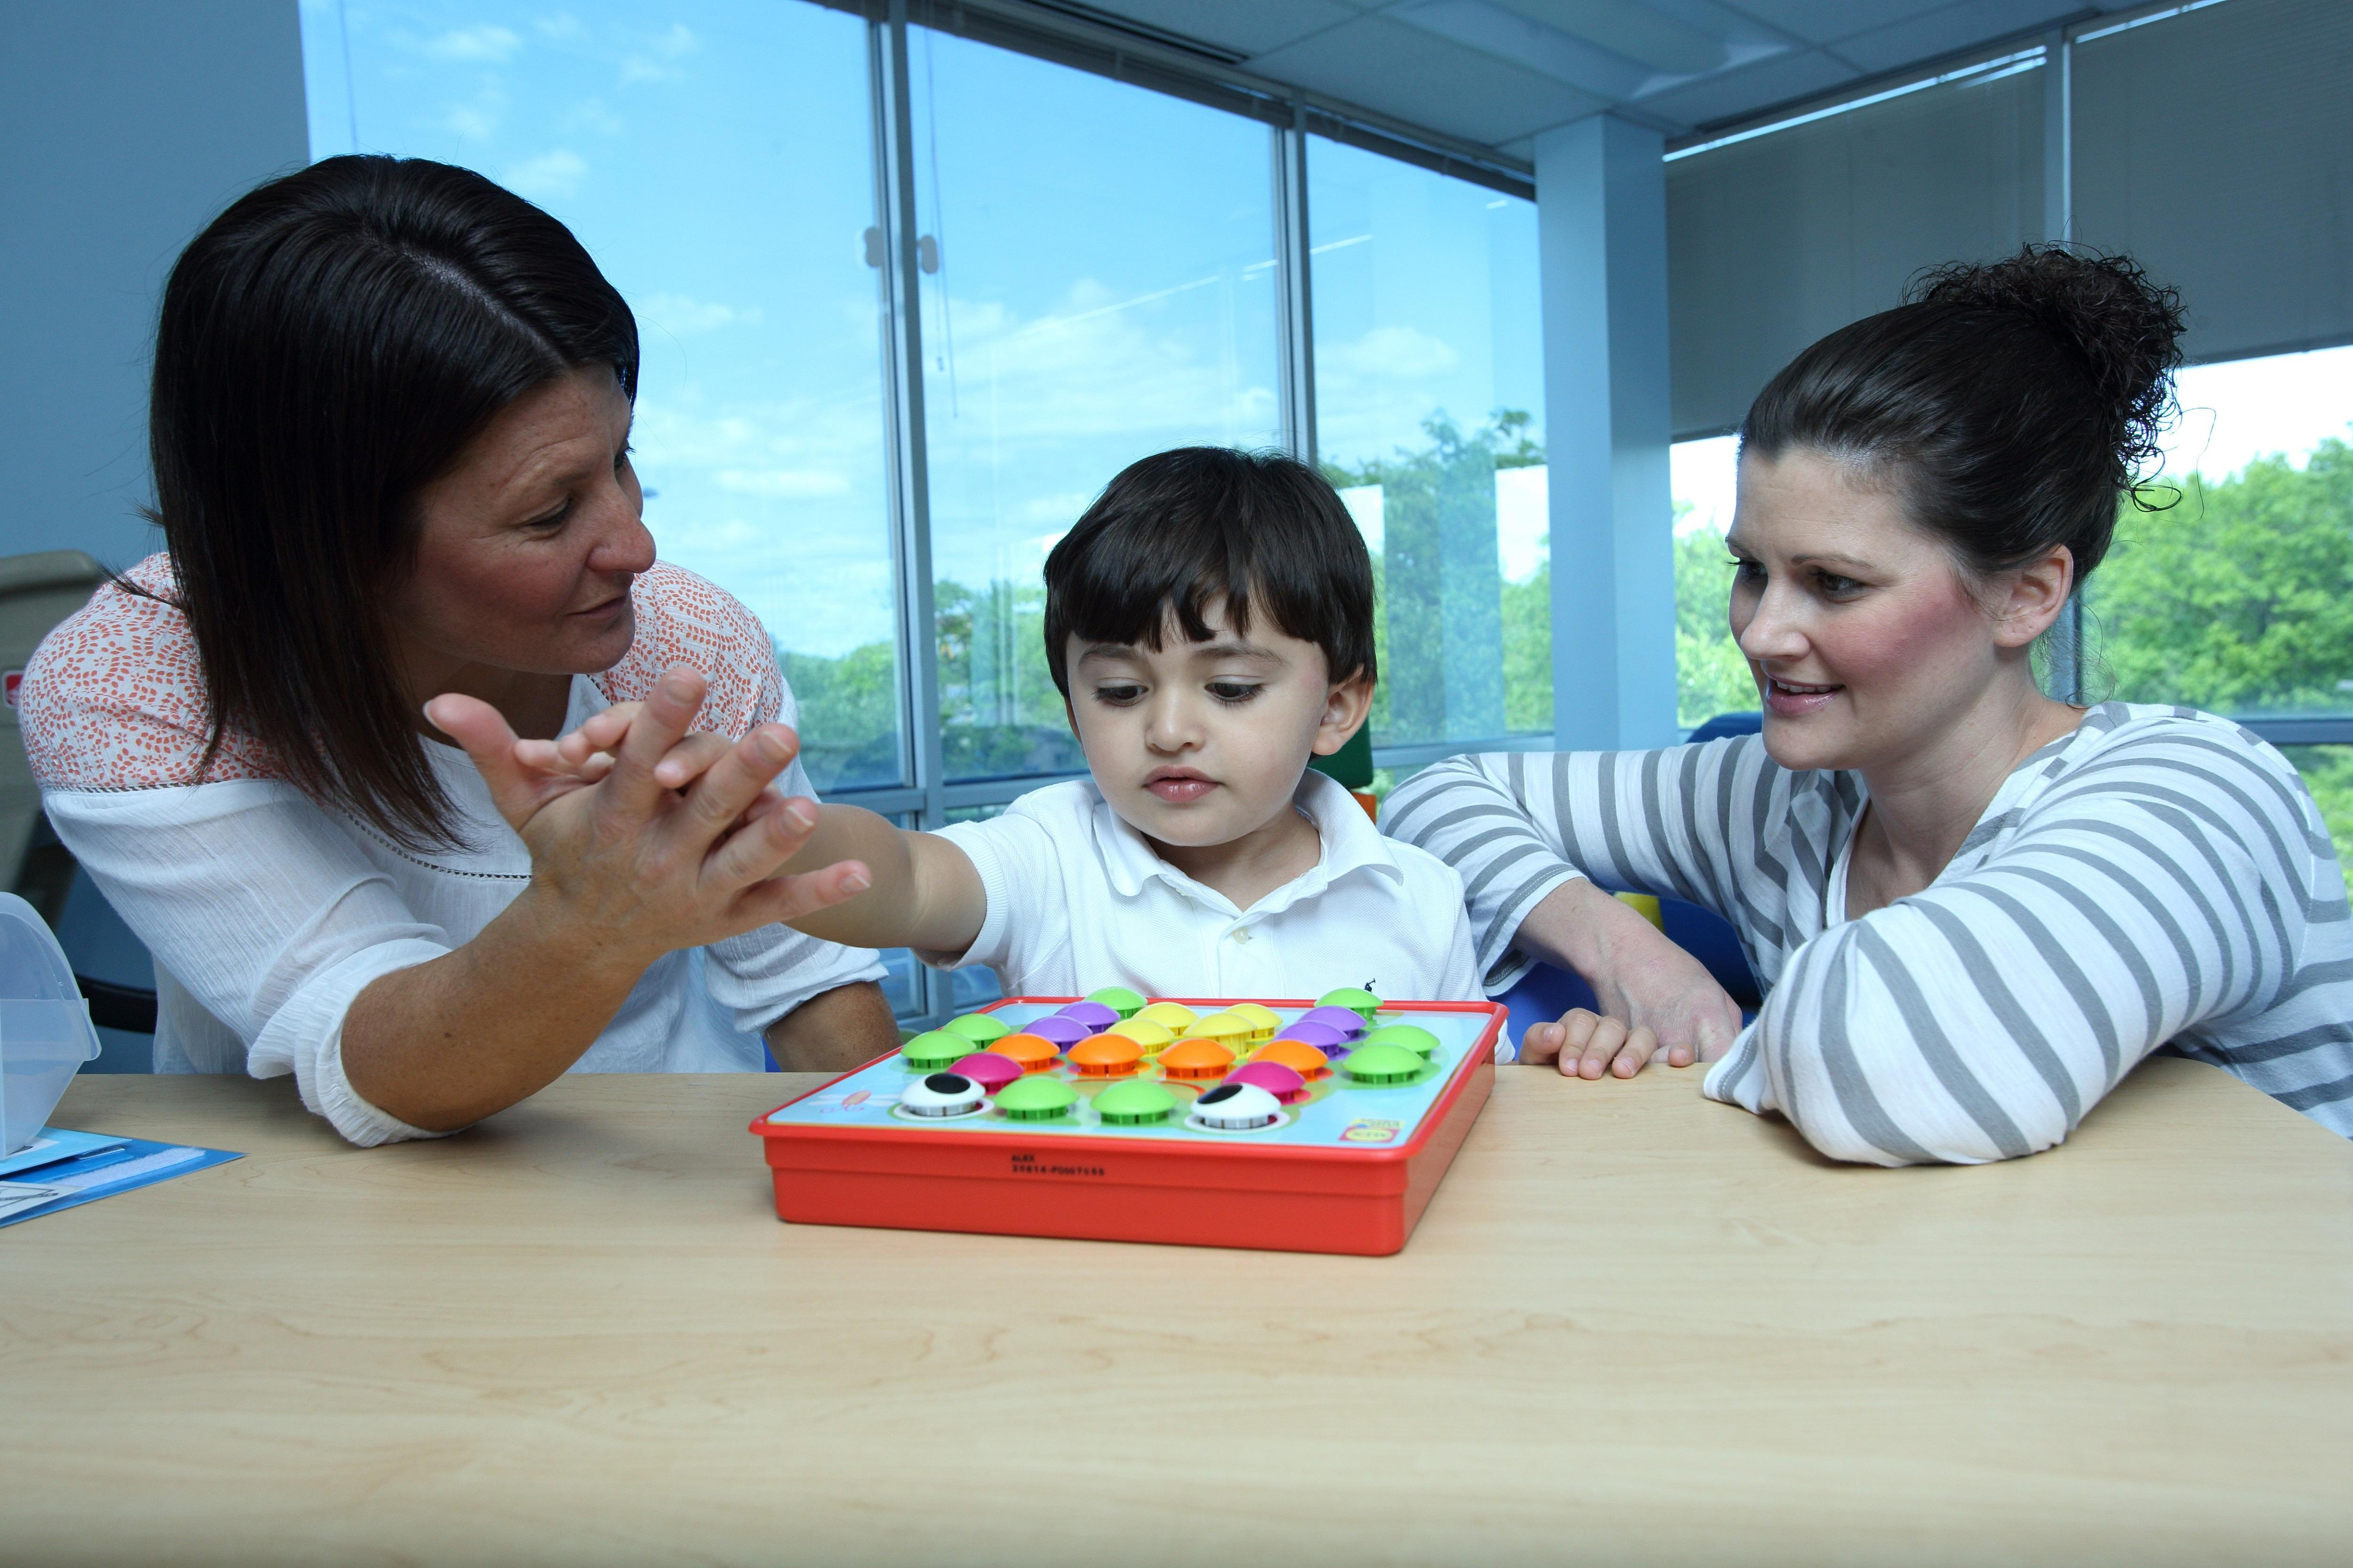 Getting an Autism Spectrum Disorder Diagnosis: Where Do I Go From Here?